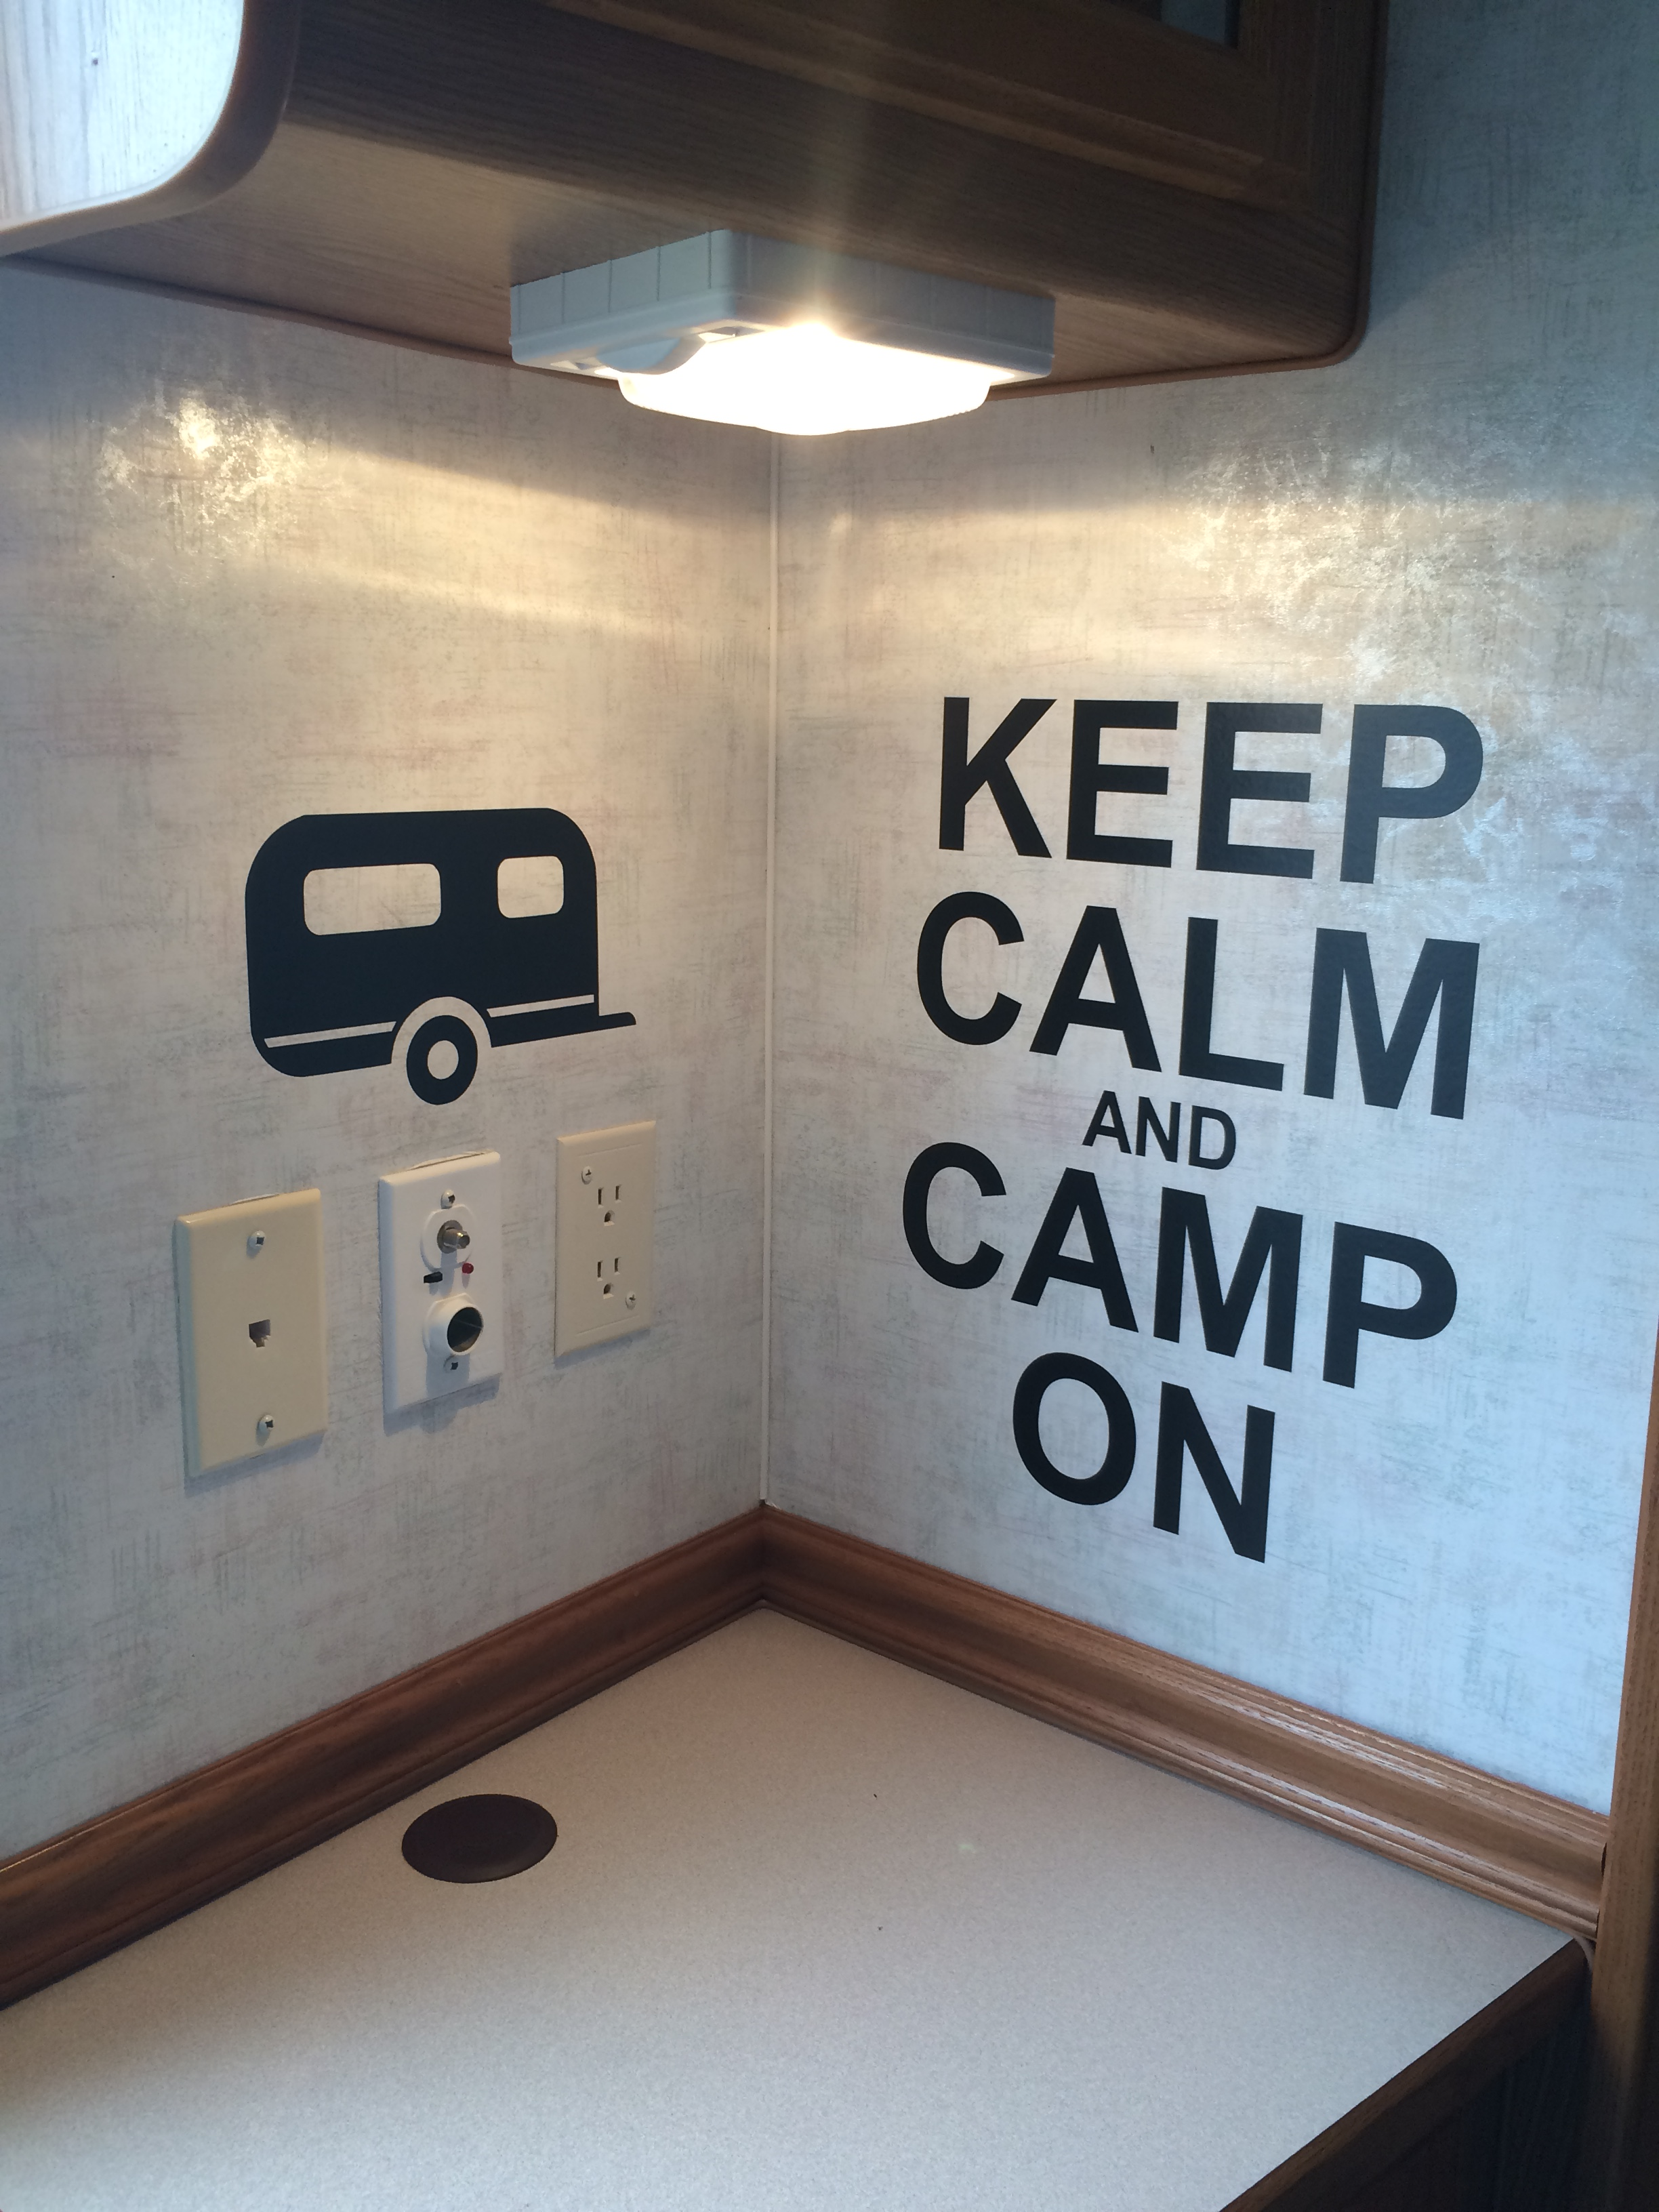 wd634-keep-calm-in-camper-2-kristi-ymker-s-conflicted-copy-2017-04-14-.jpg